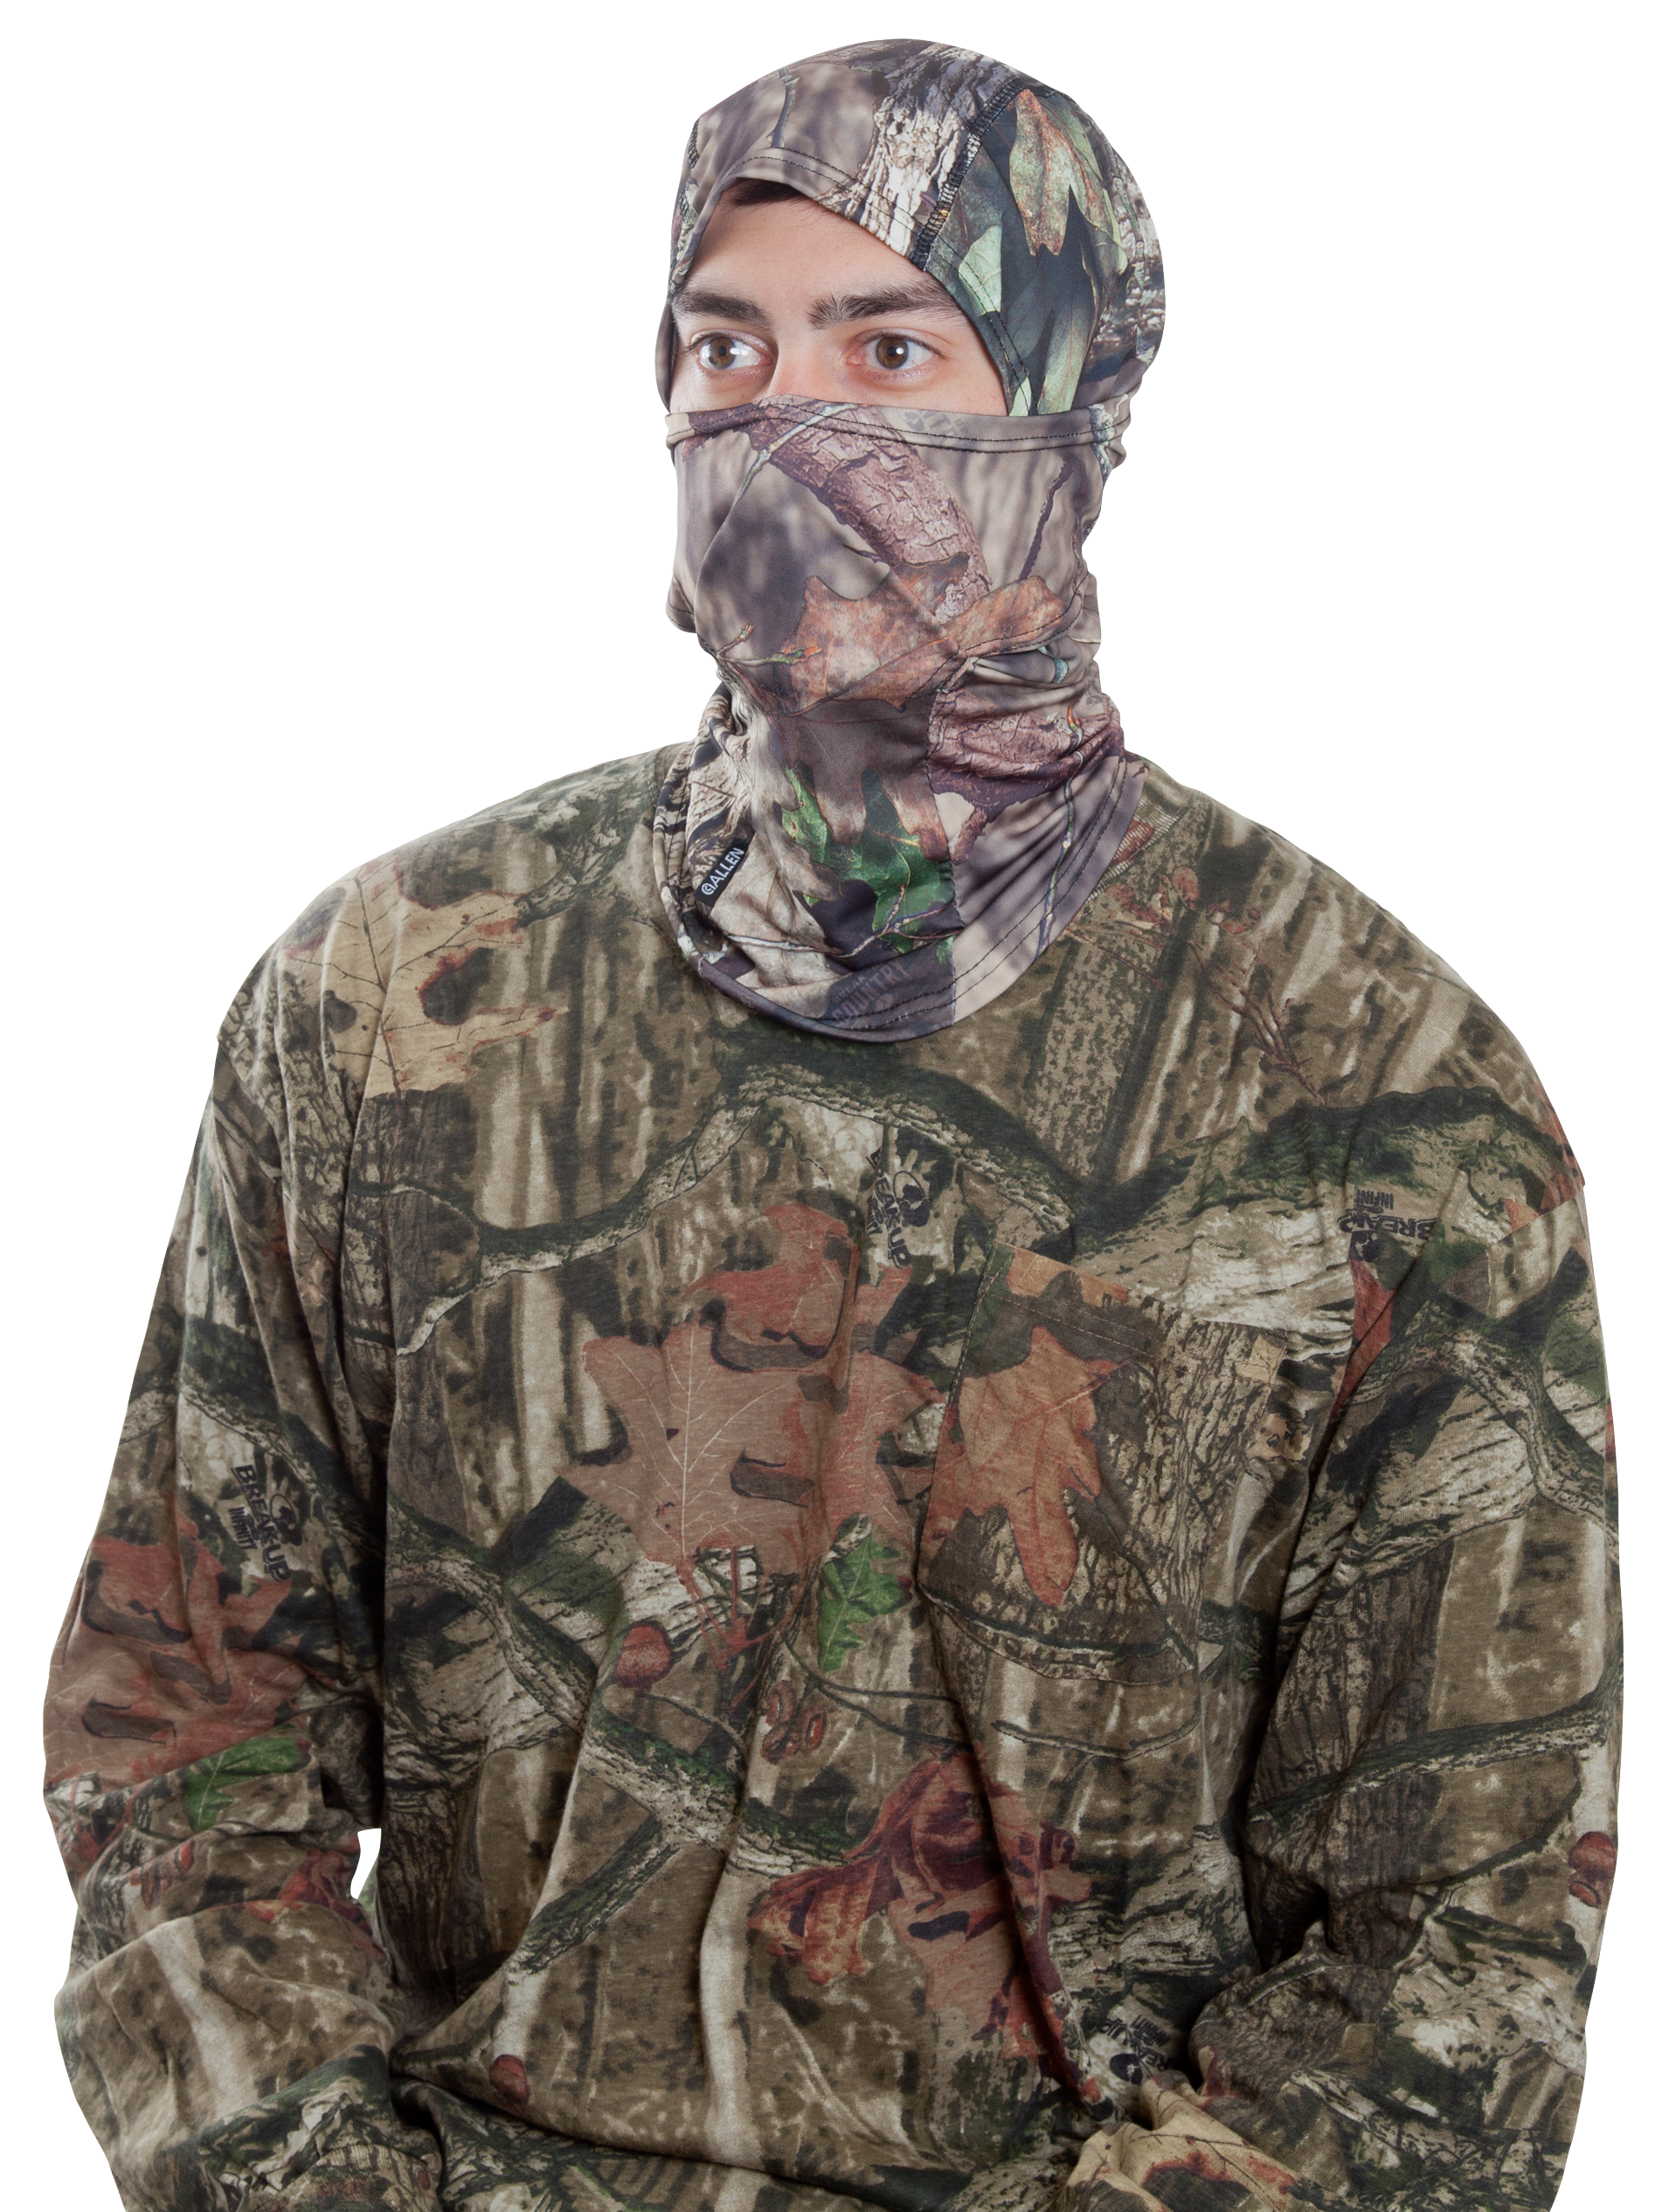 Allen 17483 Balaclava Face Mask Adjustable Face  One Size Fits Most Mossy Oak Break-Up Country